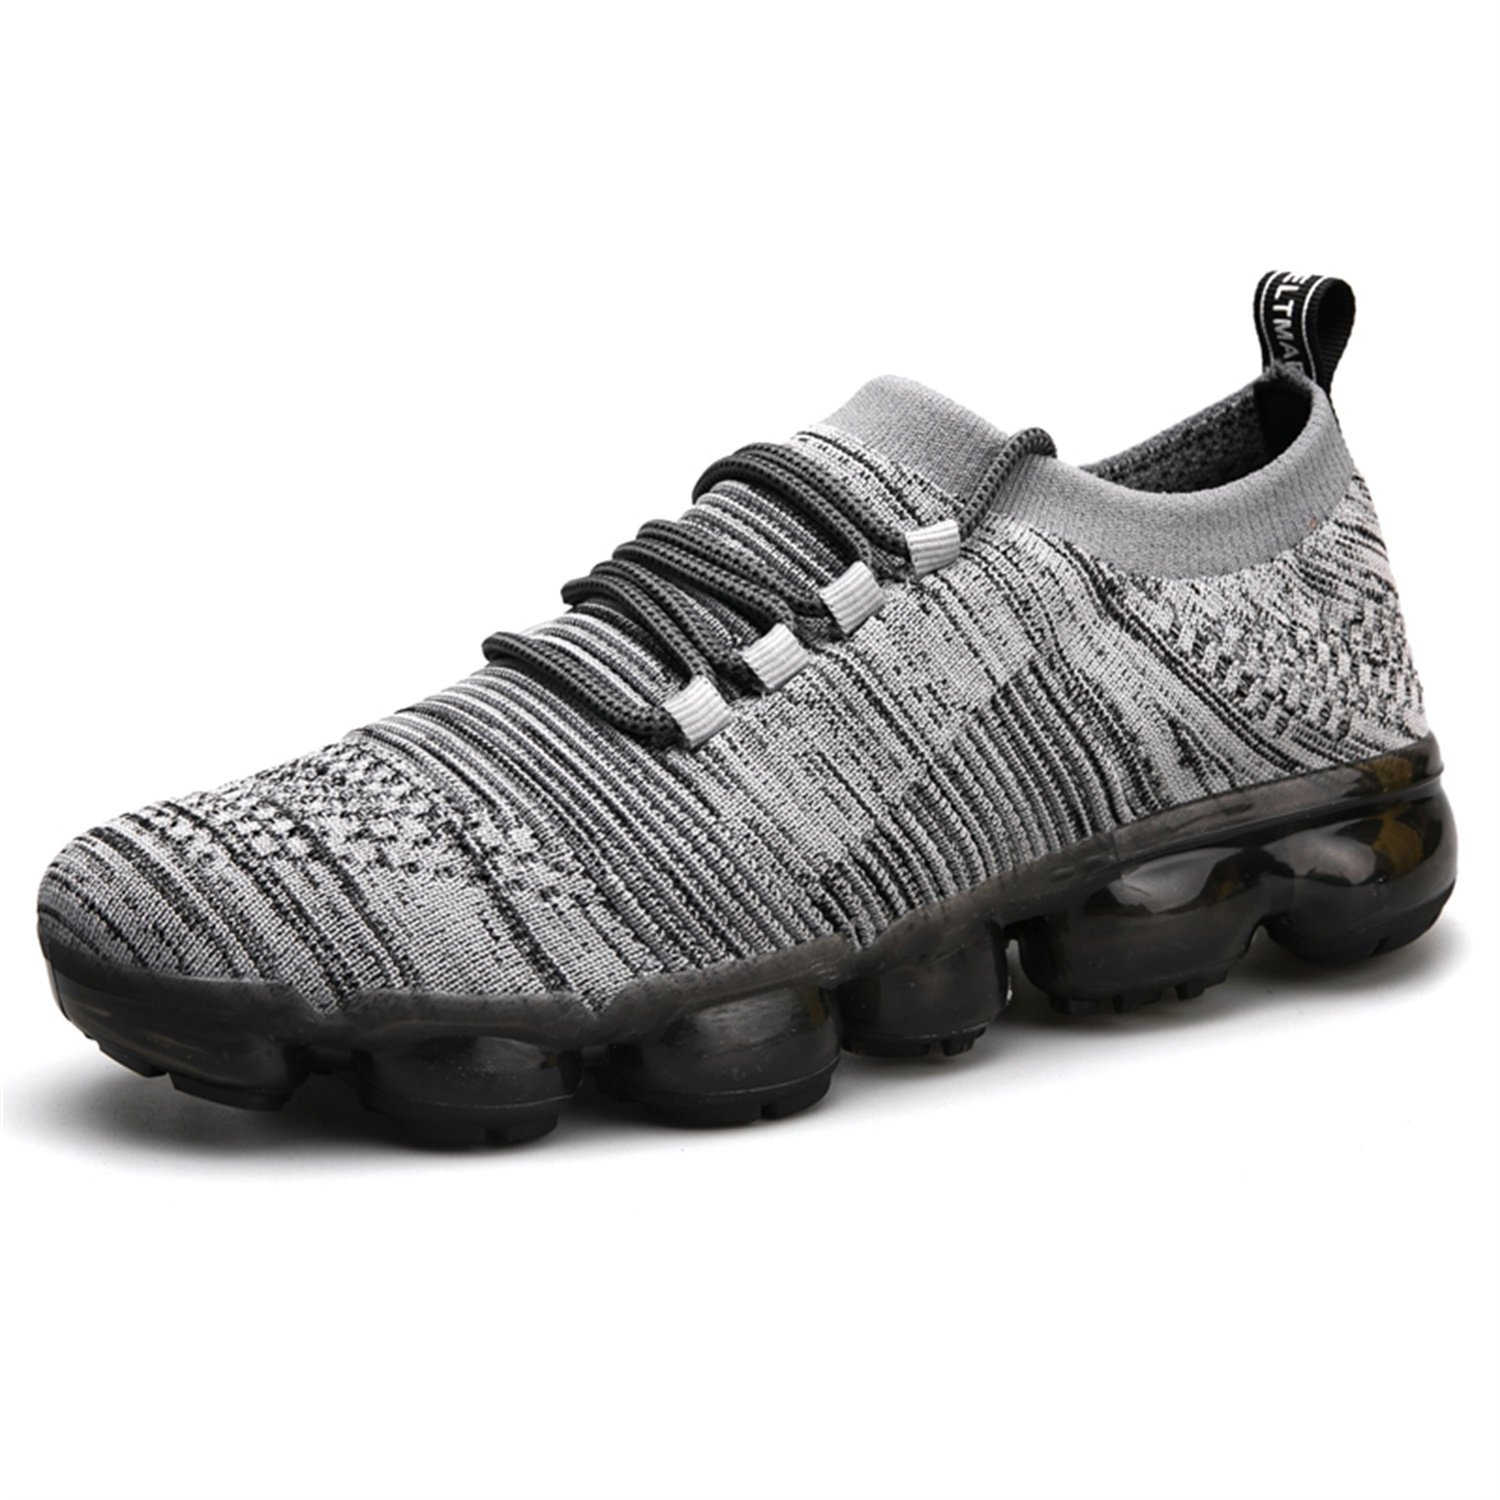 big sale a8334 0db3f Amazon.com   RunWalker Men Air Vapormax Running Shoes Male Cool Multicolor  Sole Fitness Gym Sneakers ...   Shoes